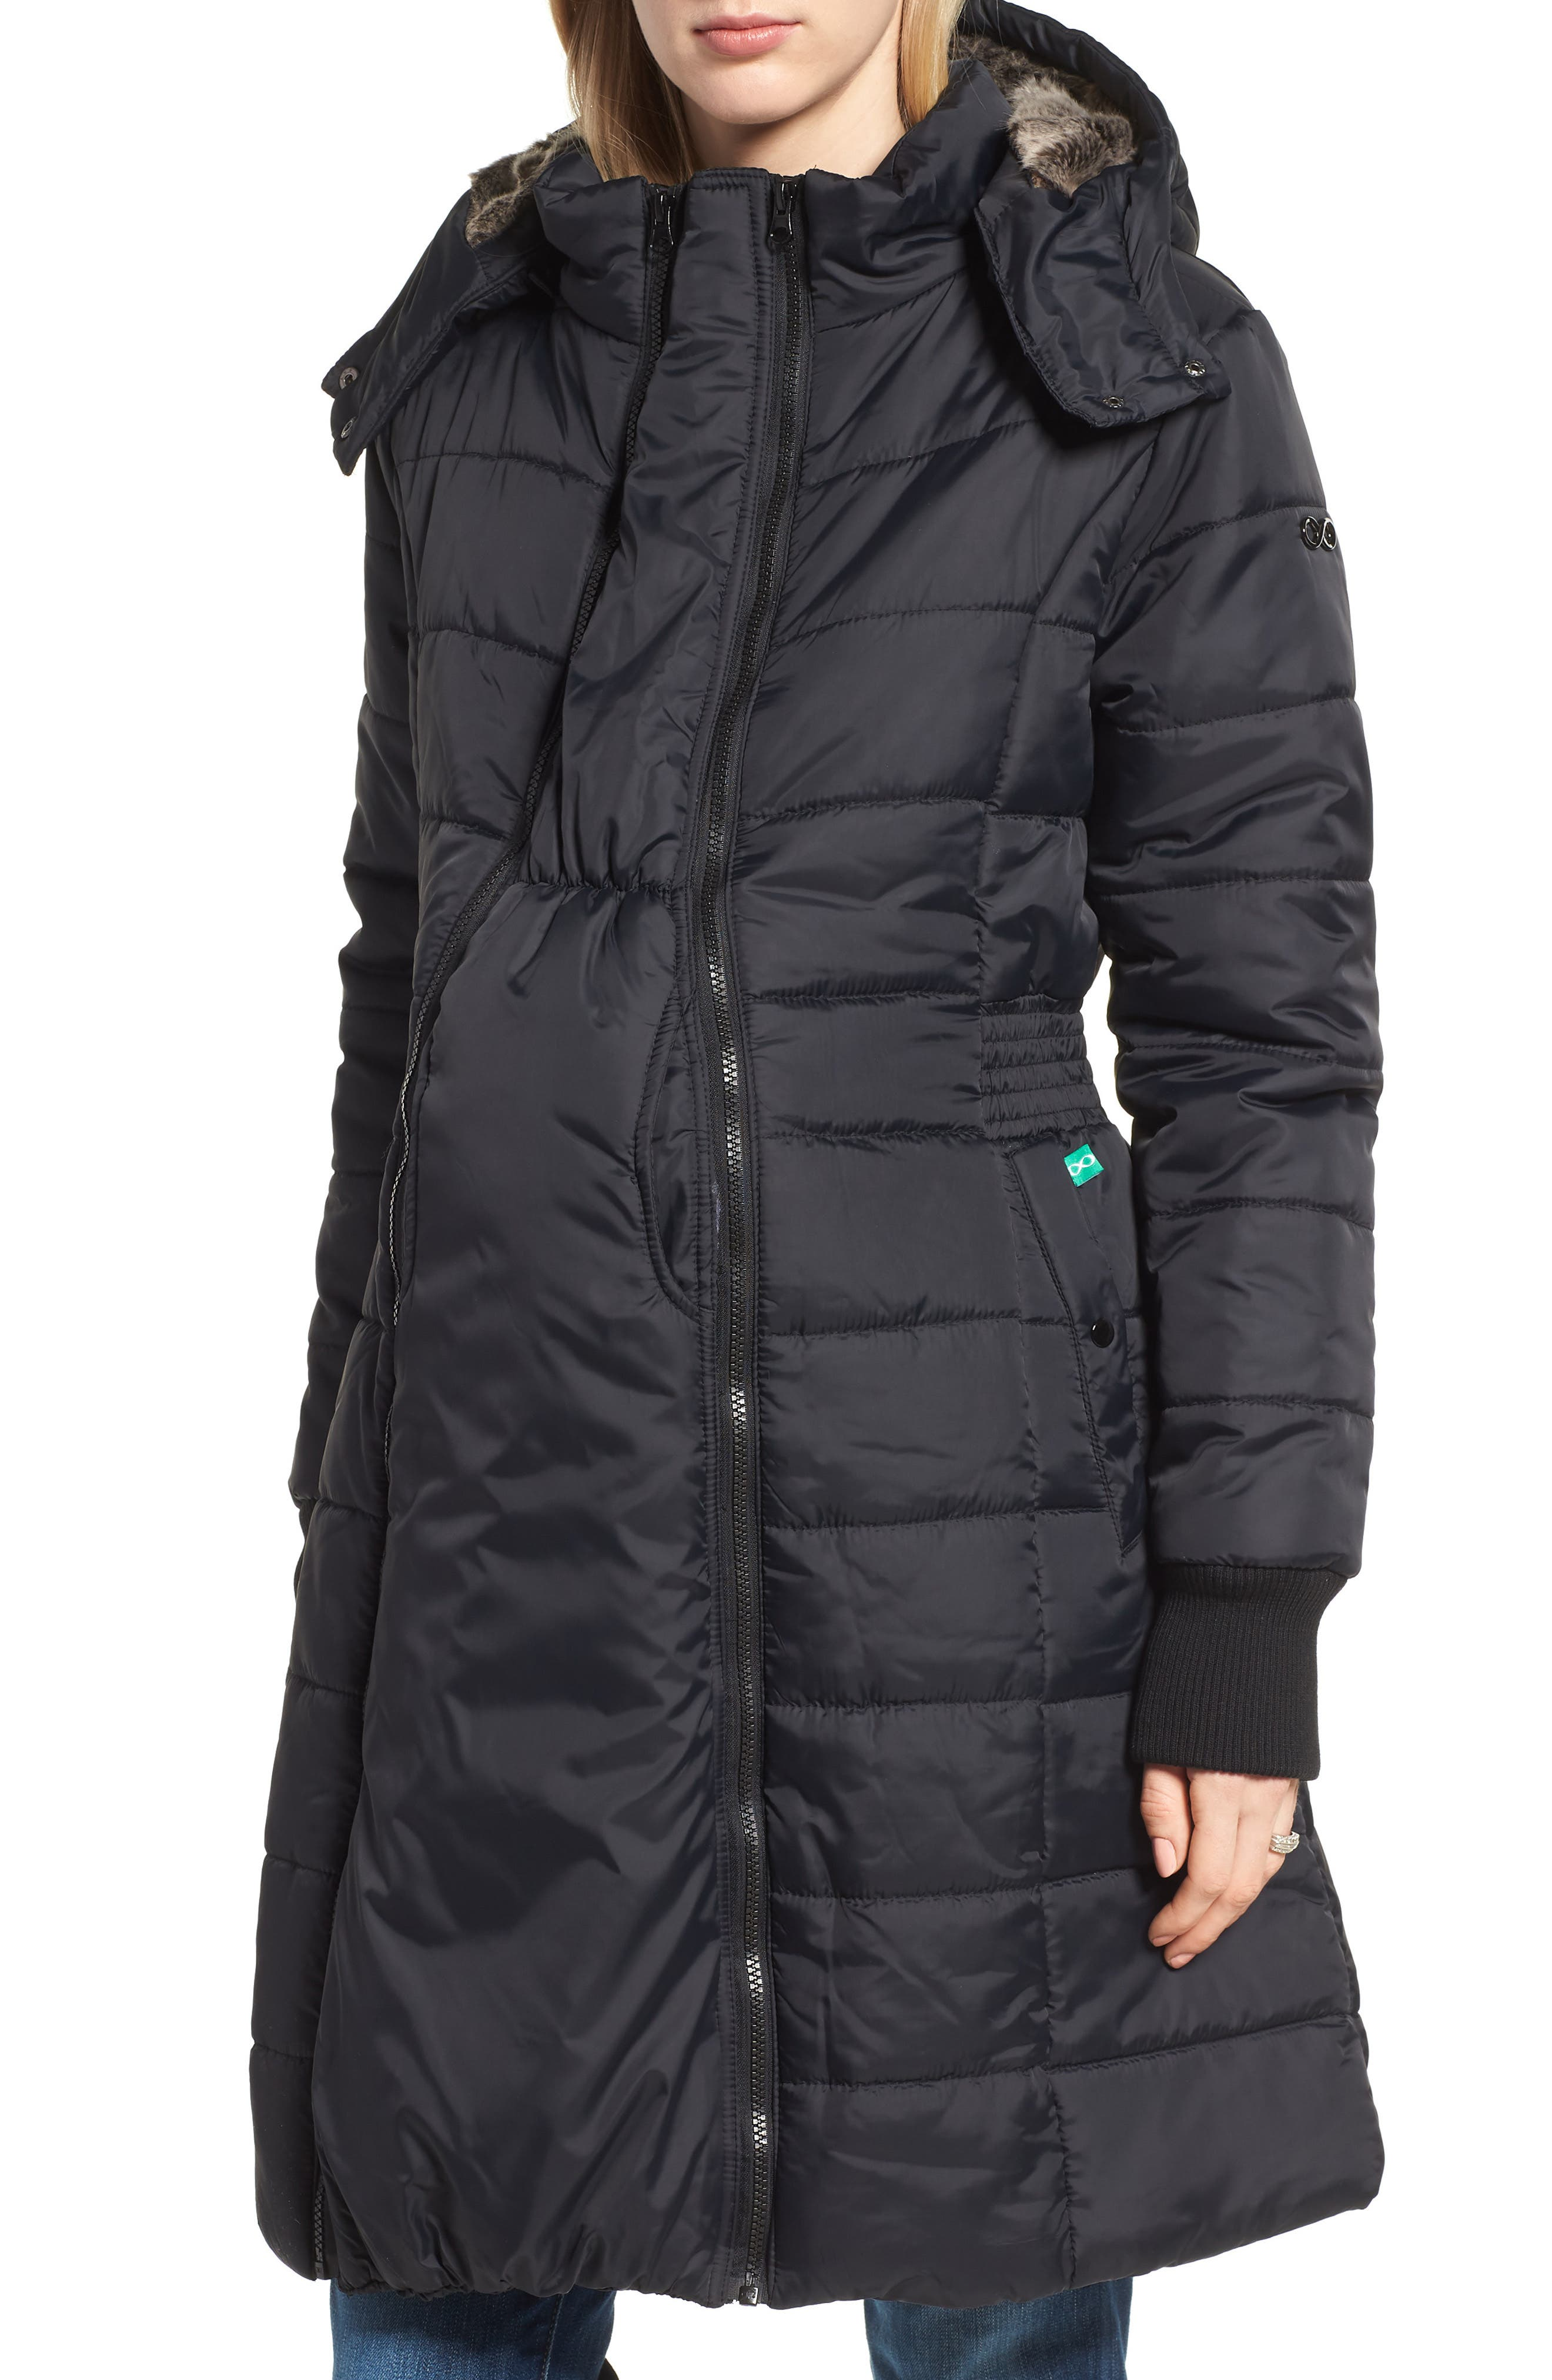 Main Image - Modern Eternity Madison Quilted Maternity Puffer Coat with Faux Fur Trim